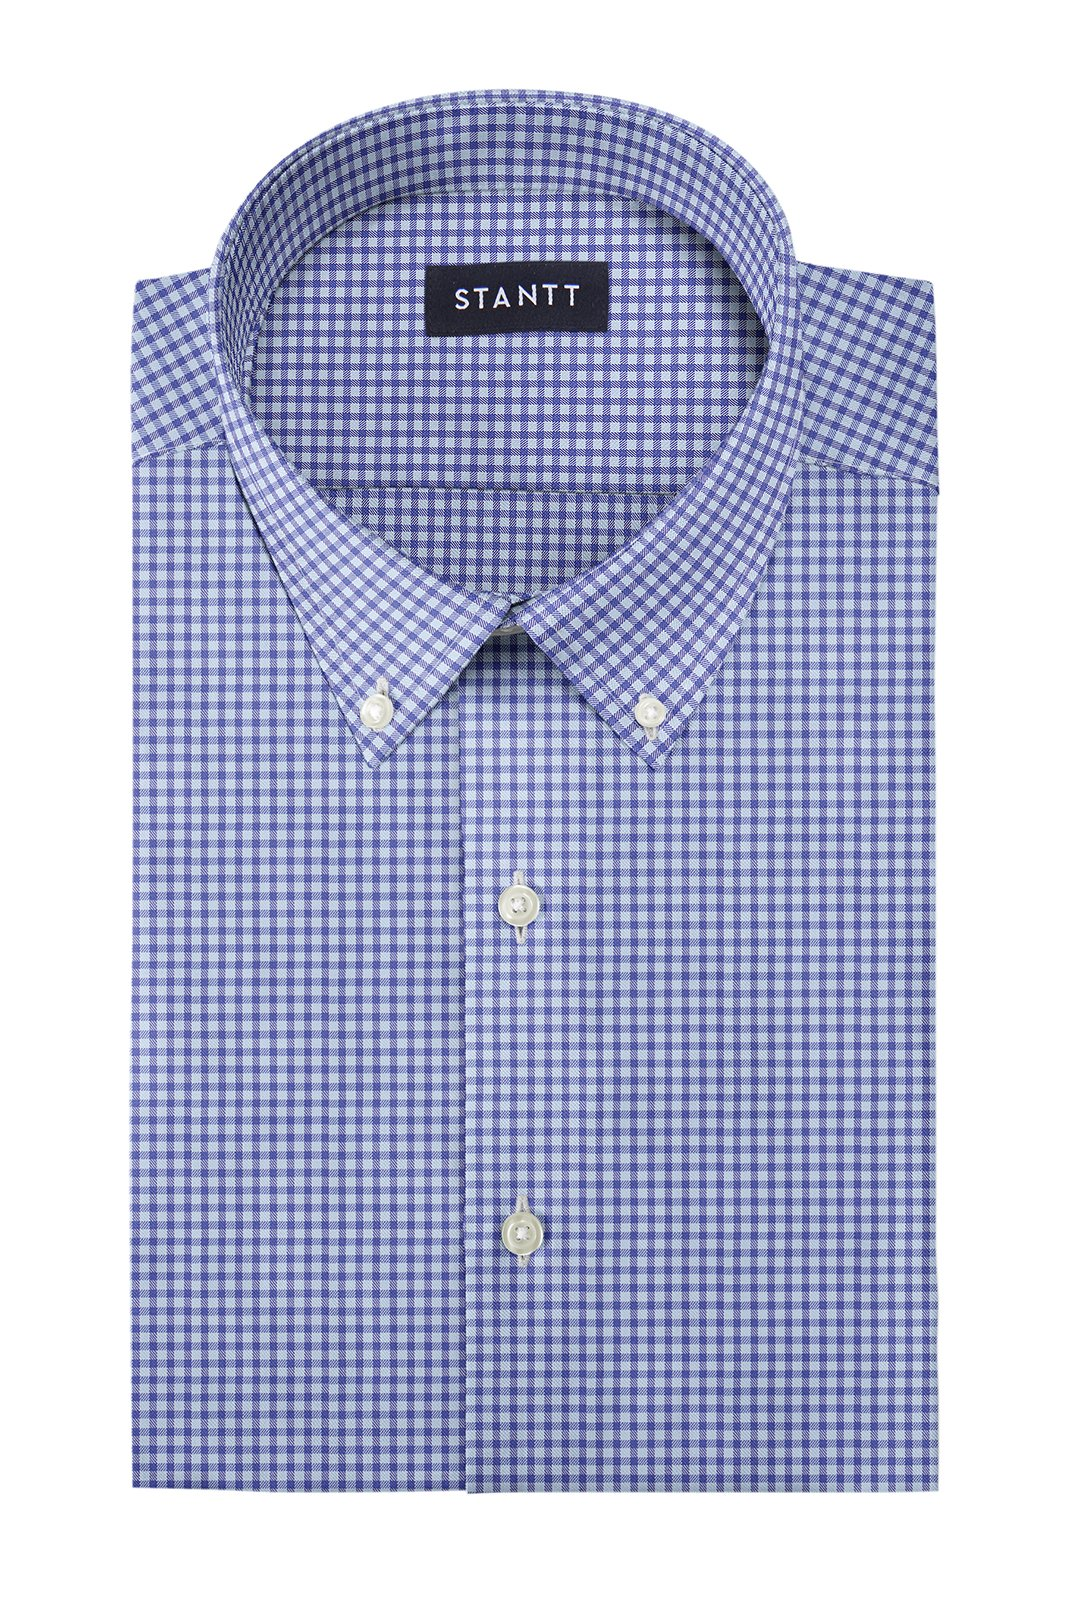 Duca Blue Mini Gingham: Button-Down Collar, Barrel Cuff